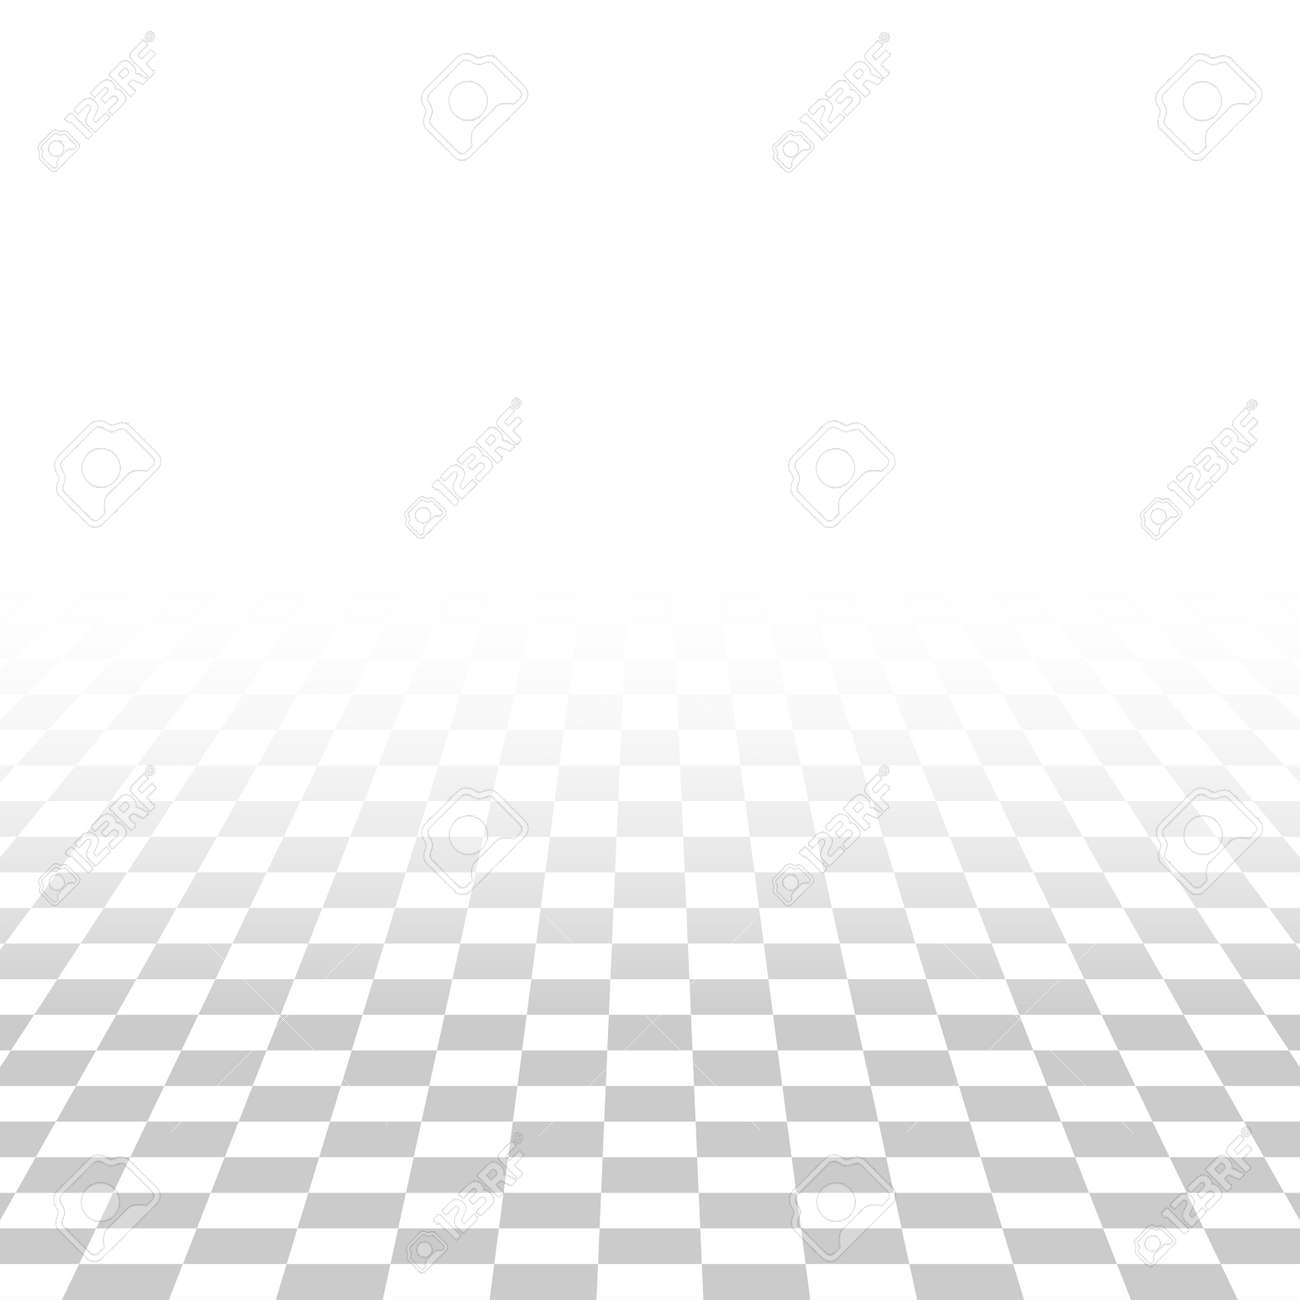 Background image transparency - Abstract Square Tile Perspective White And Gray Texture Background Same Transparency Grid Stock Vector 36180541